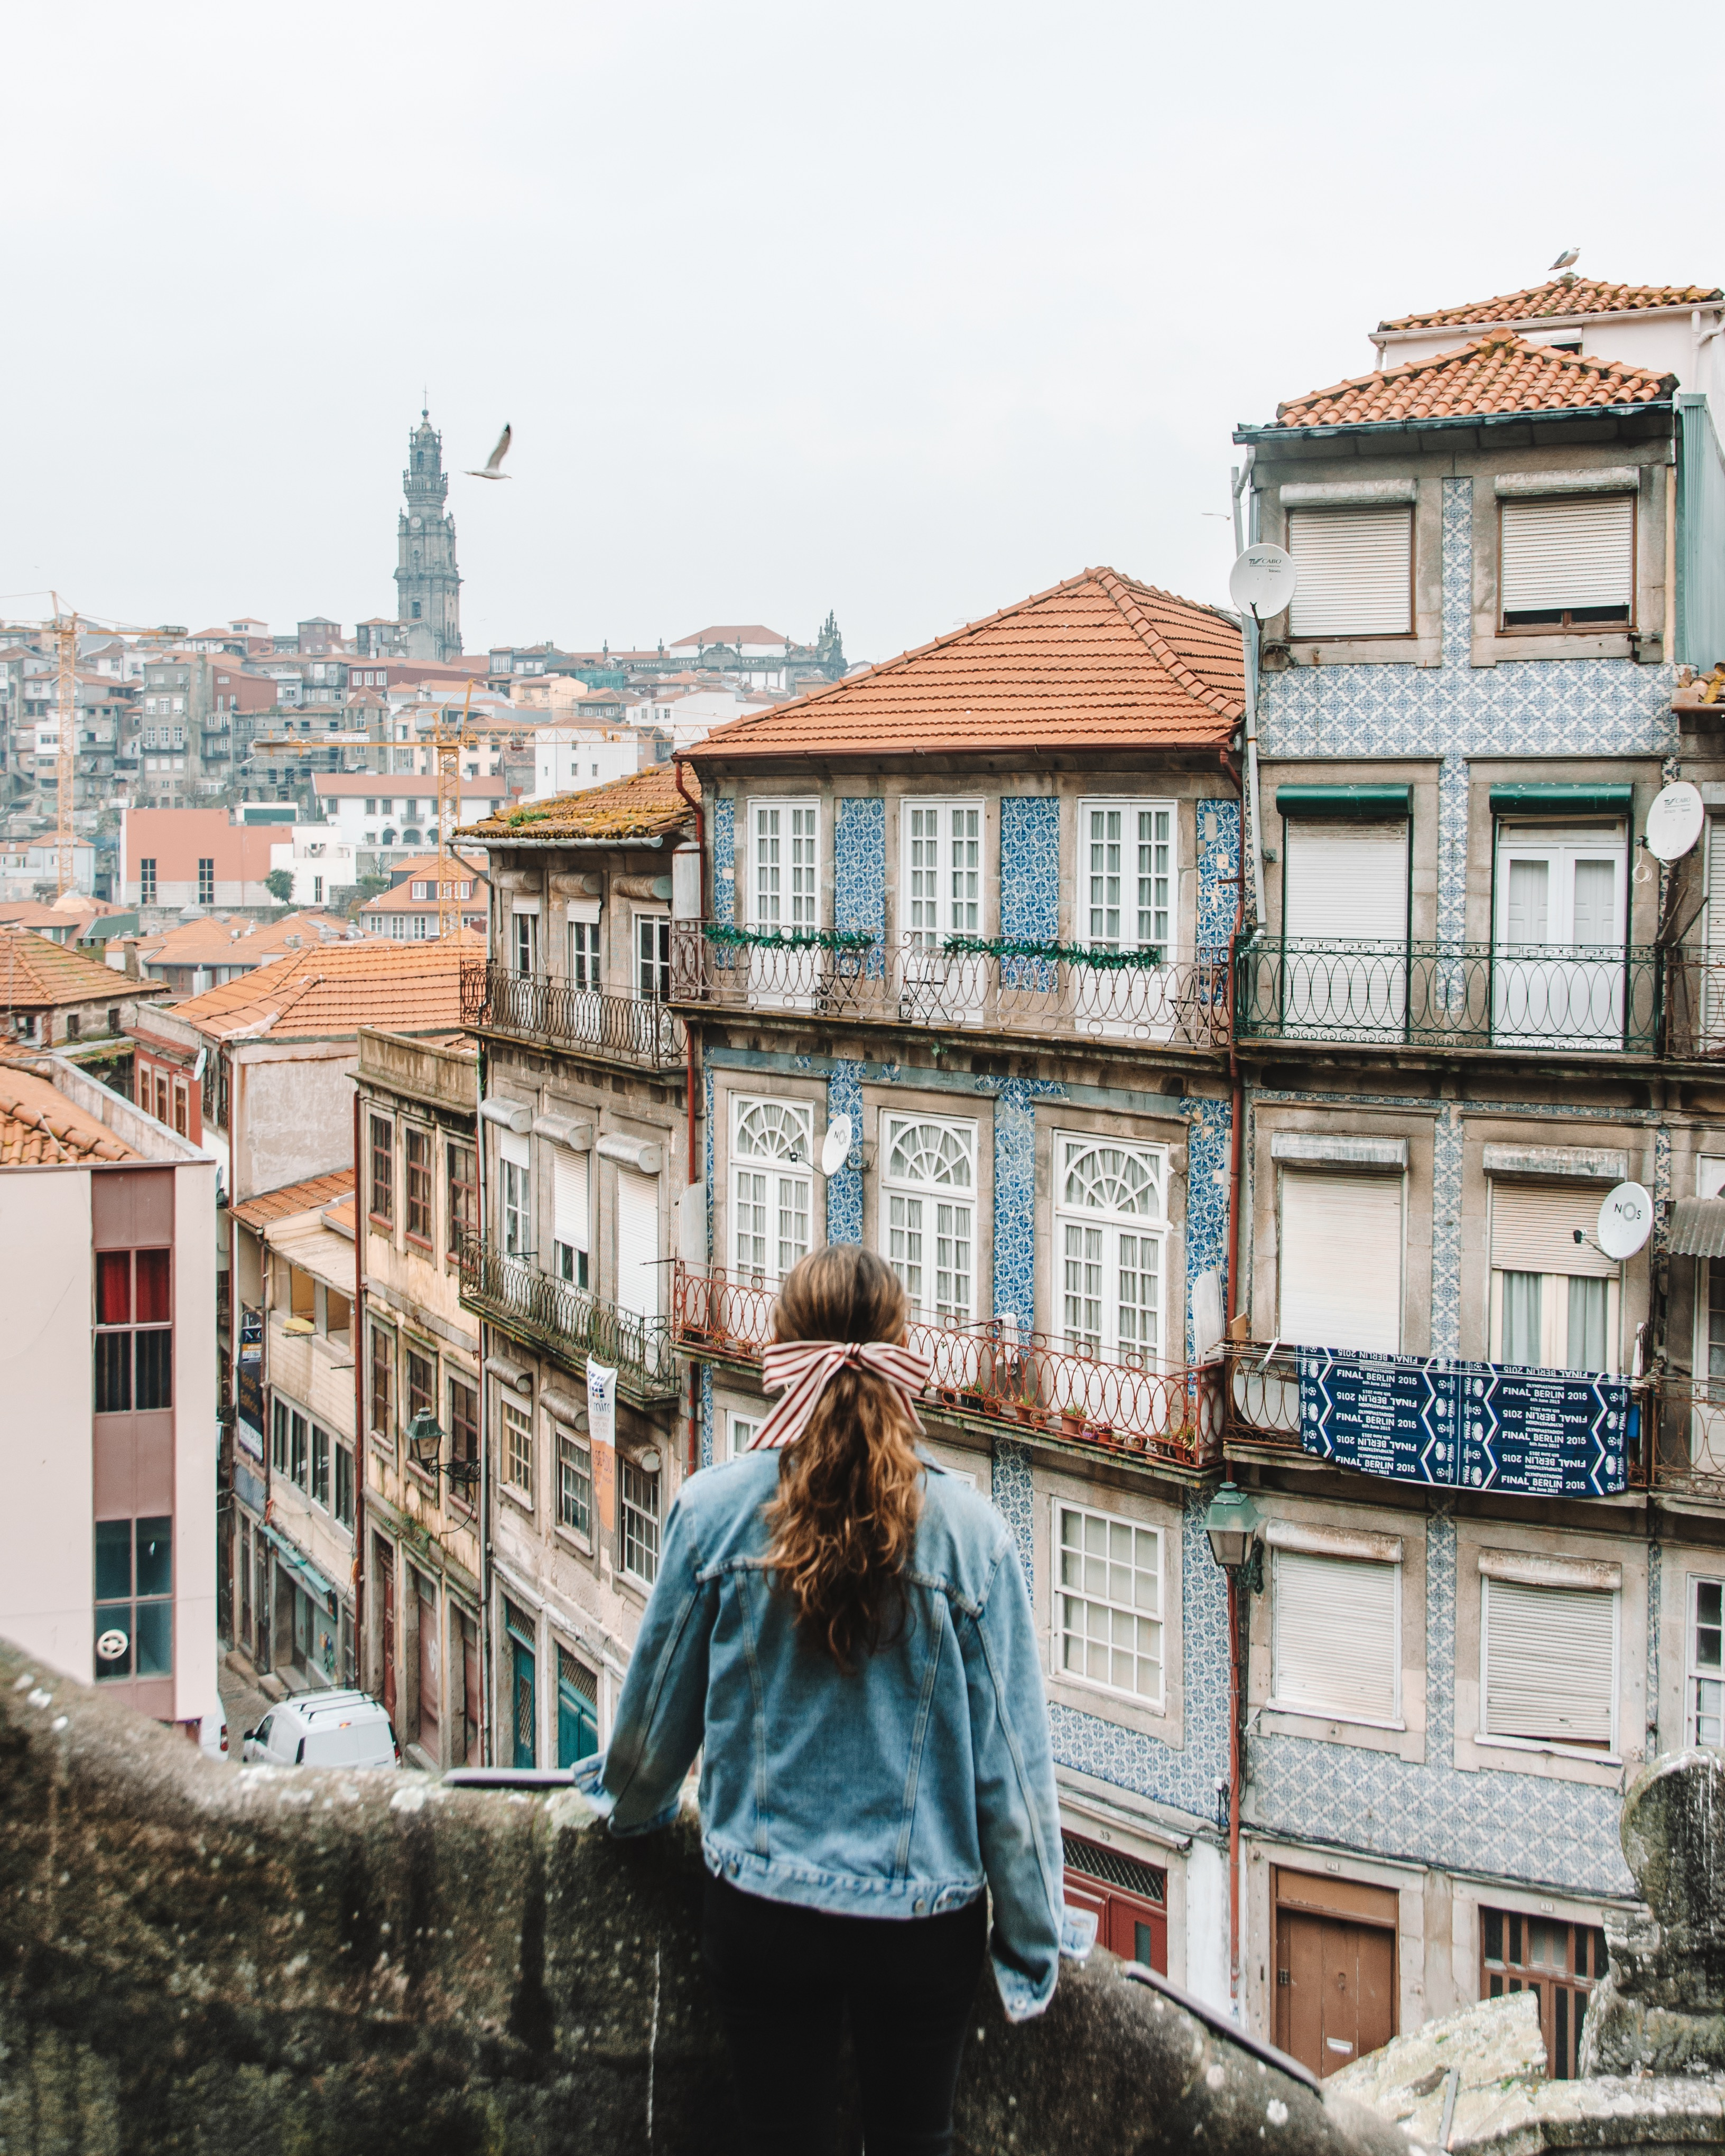 The Best Instagram Photo Spots in Porto, Portugal - Steps to Porto Cathedral